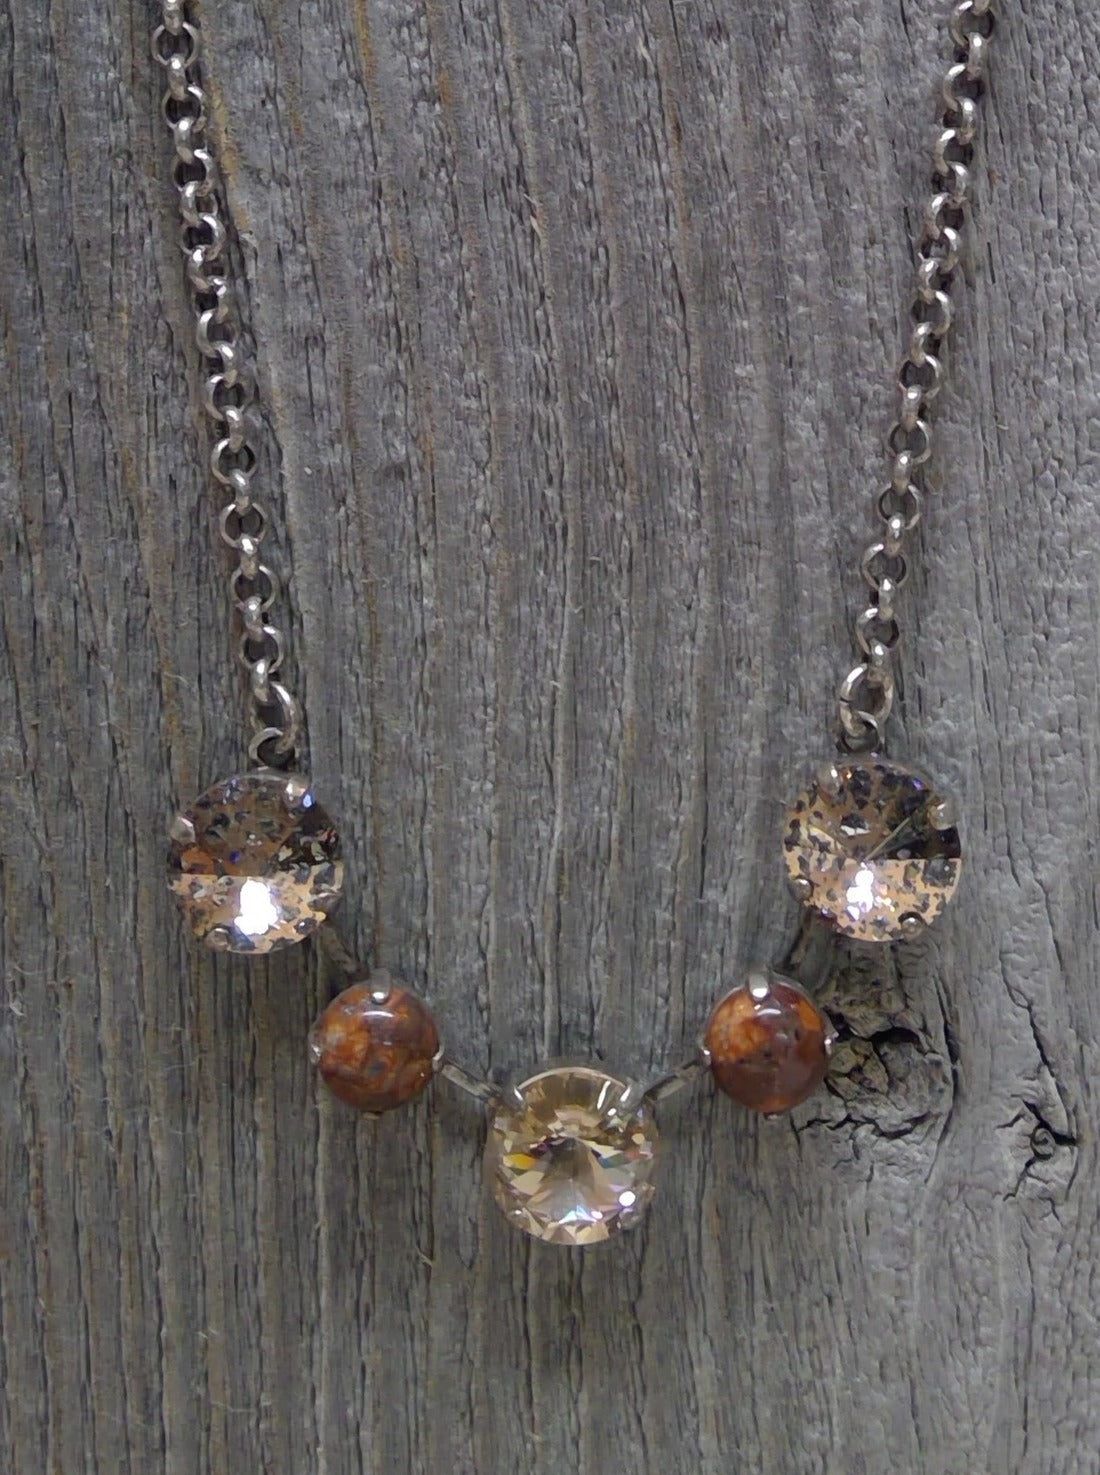 Rustic Road Jasper Collection Swarovski Crystal Necklace by Rachel Marie Designs